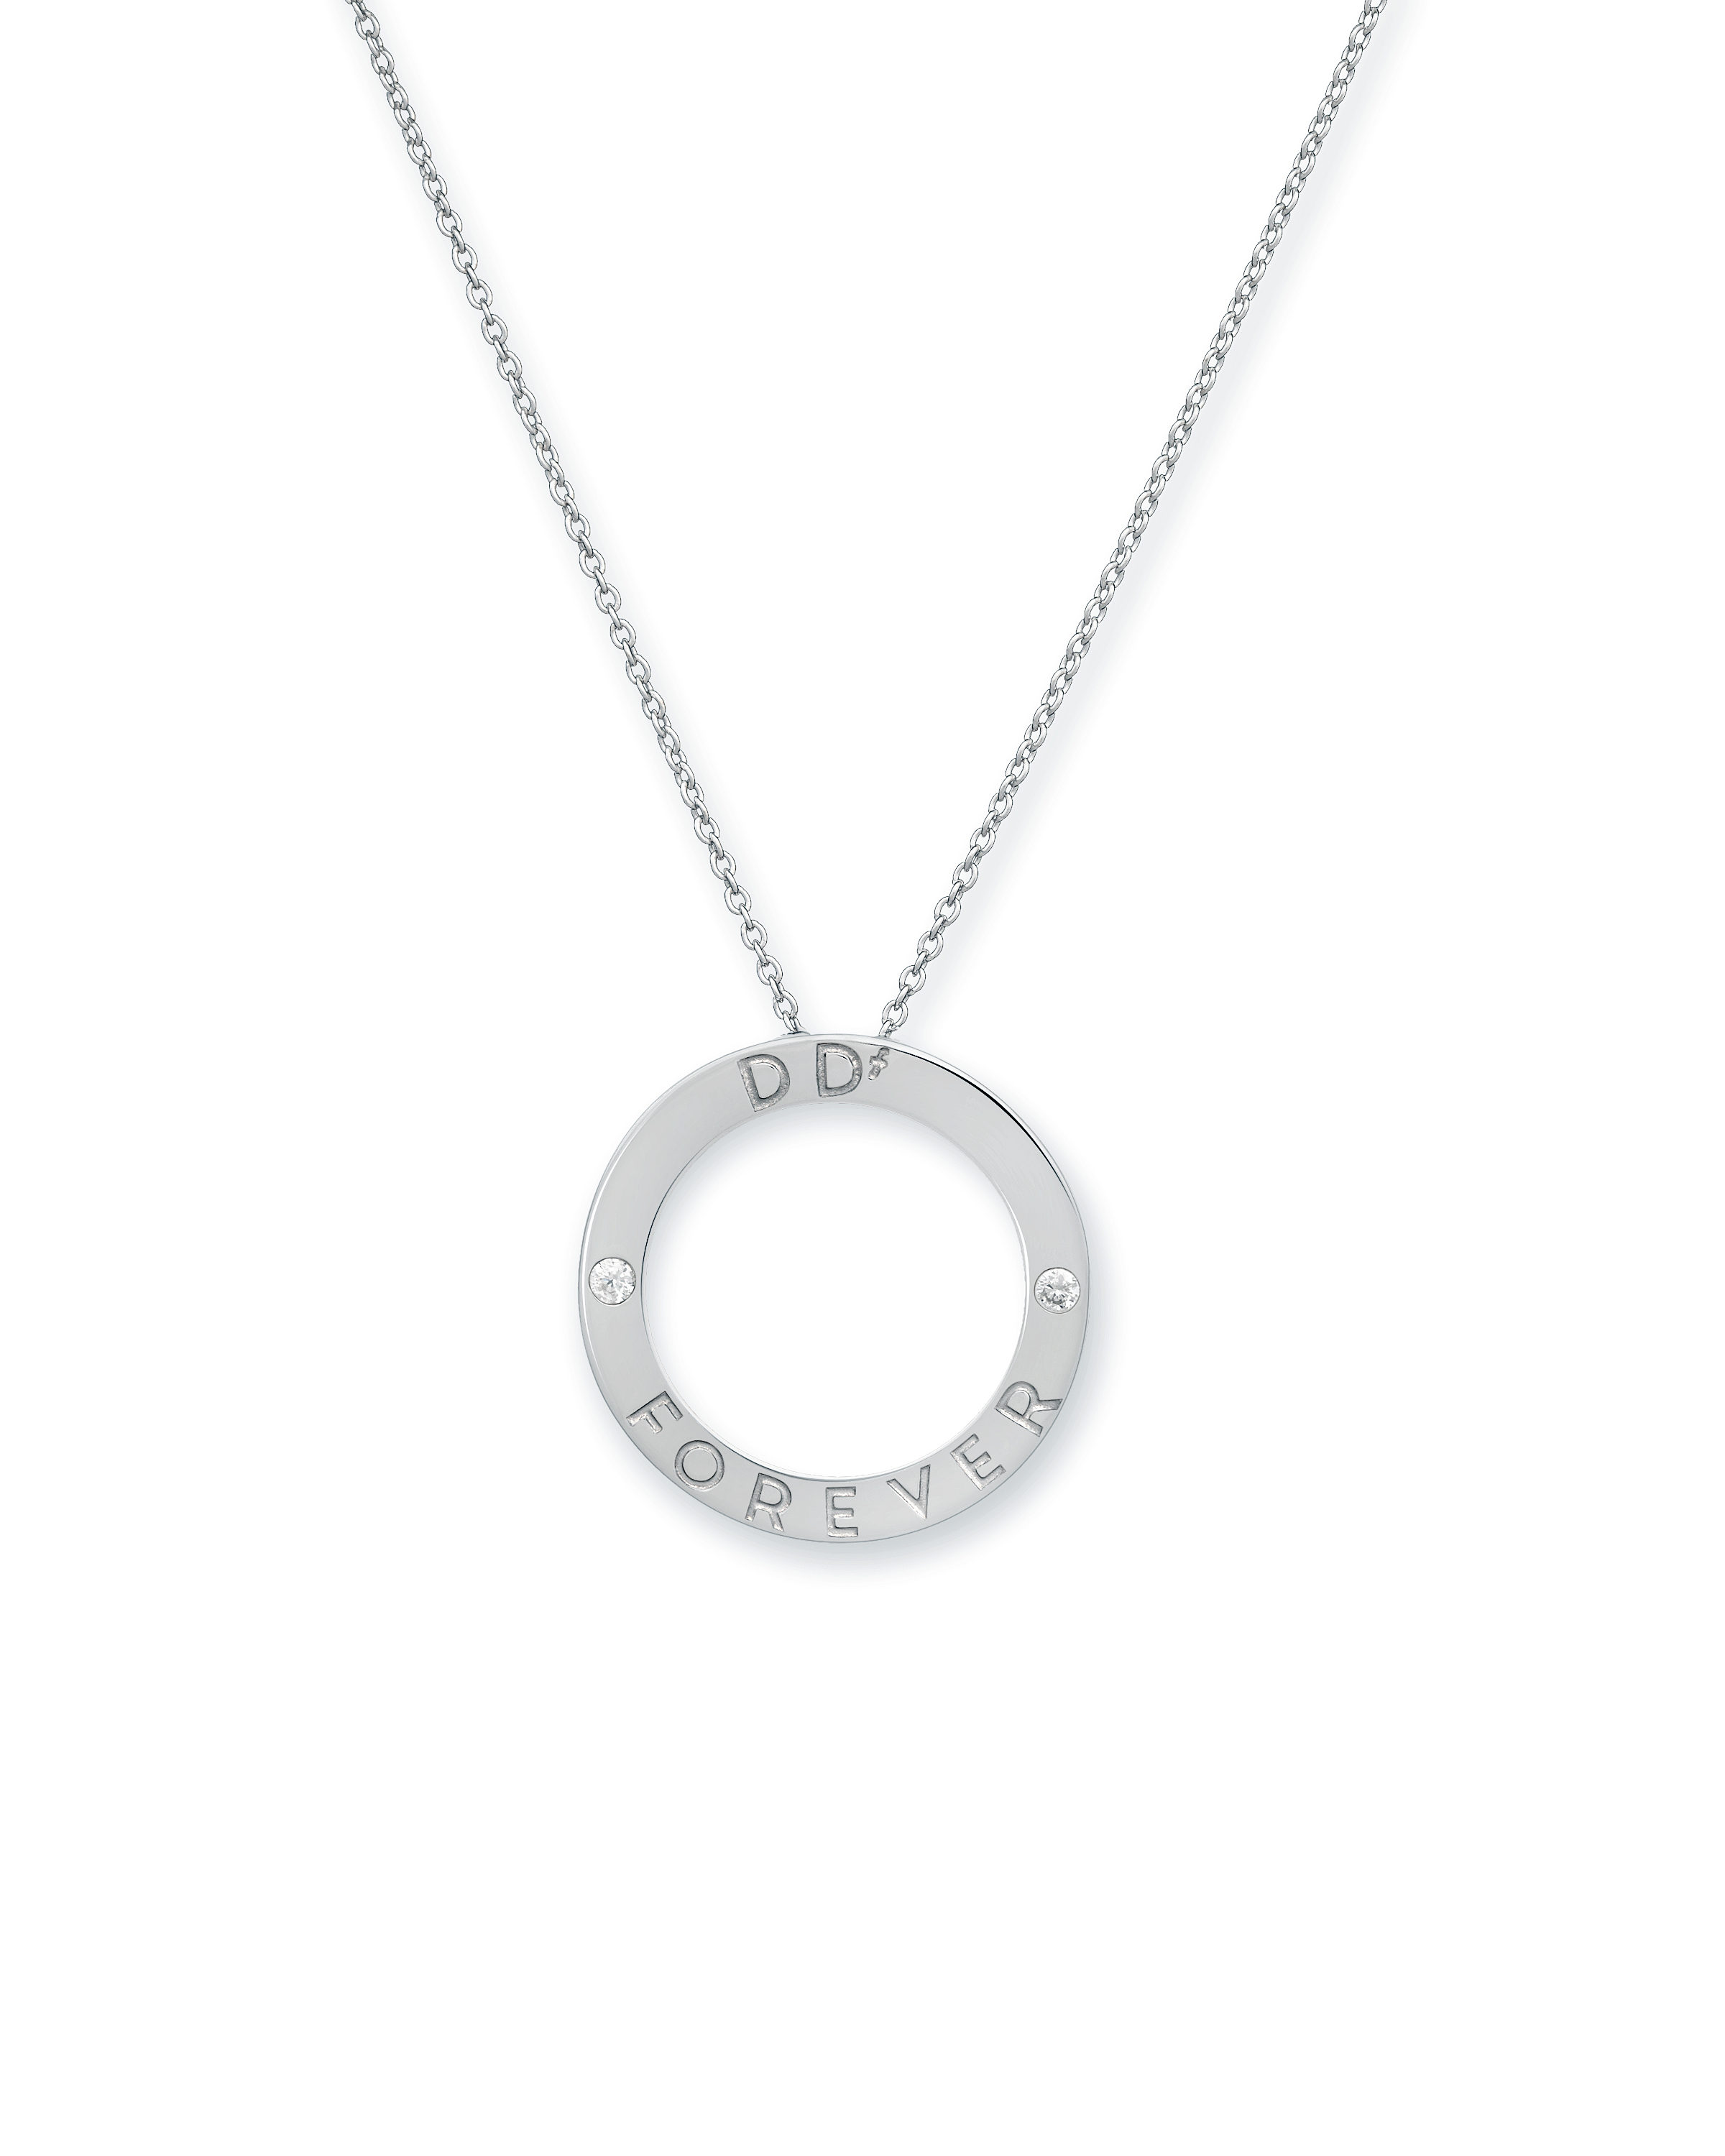 1f0d6302c684f8 DDf™ Forever Diamond Circle Necklace. Hand-Finished Sterling Silver ...